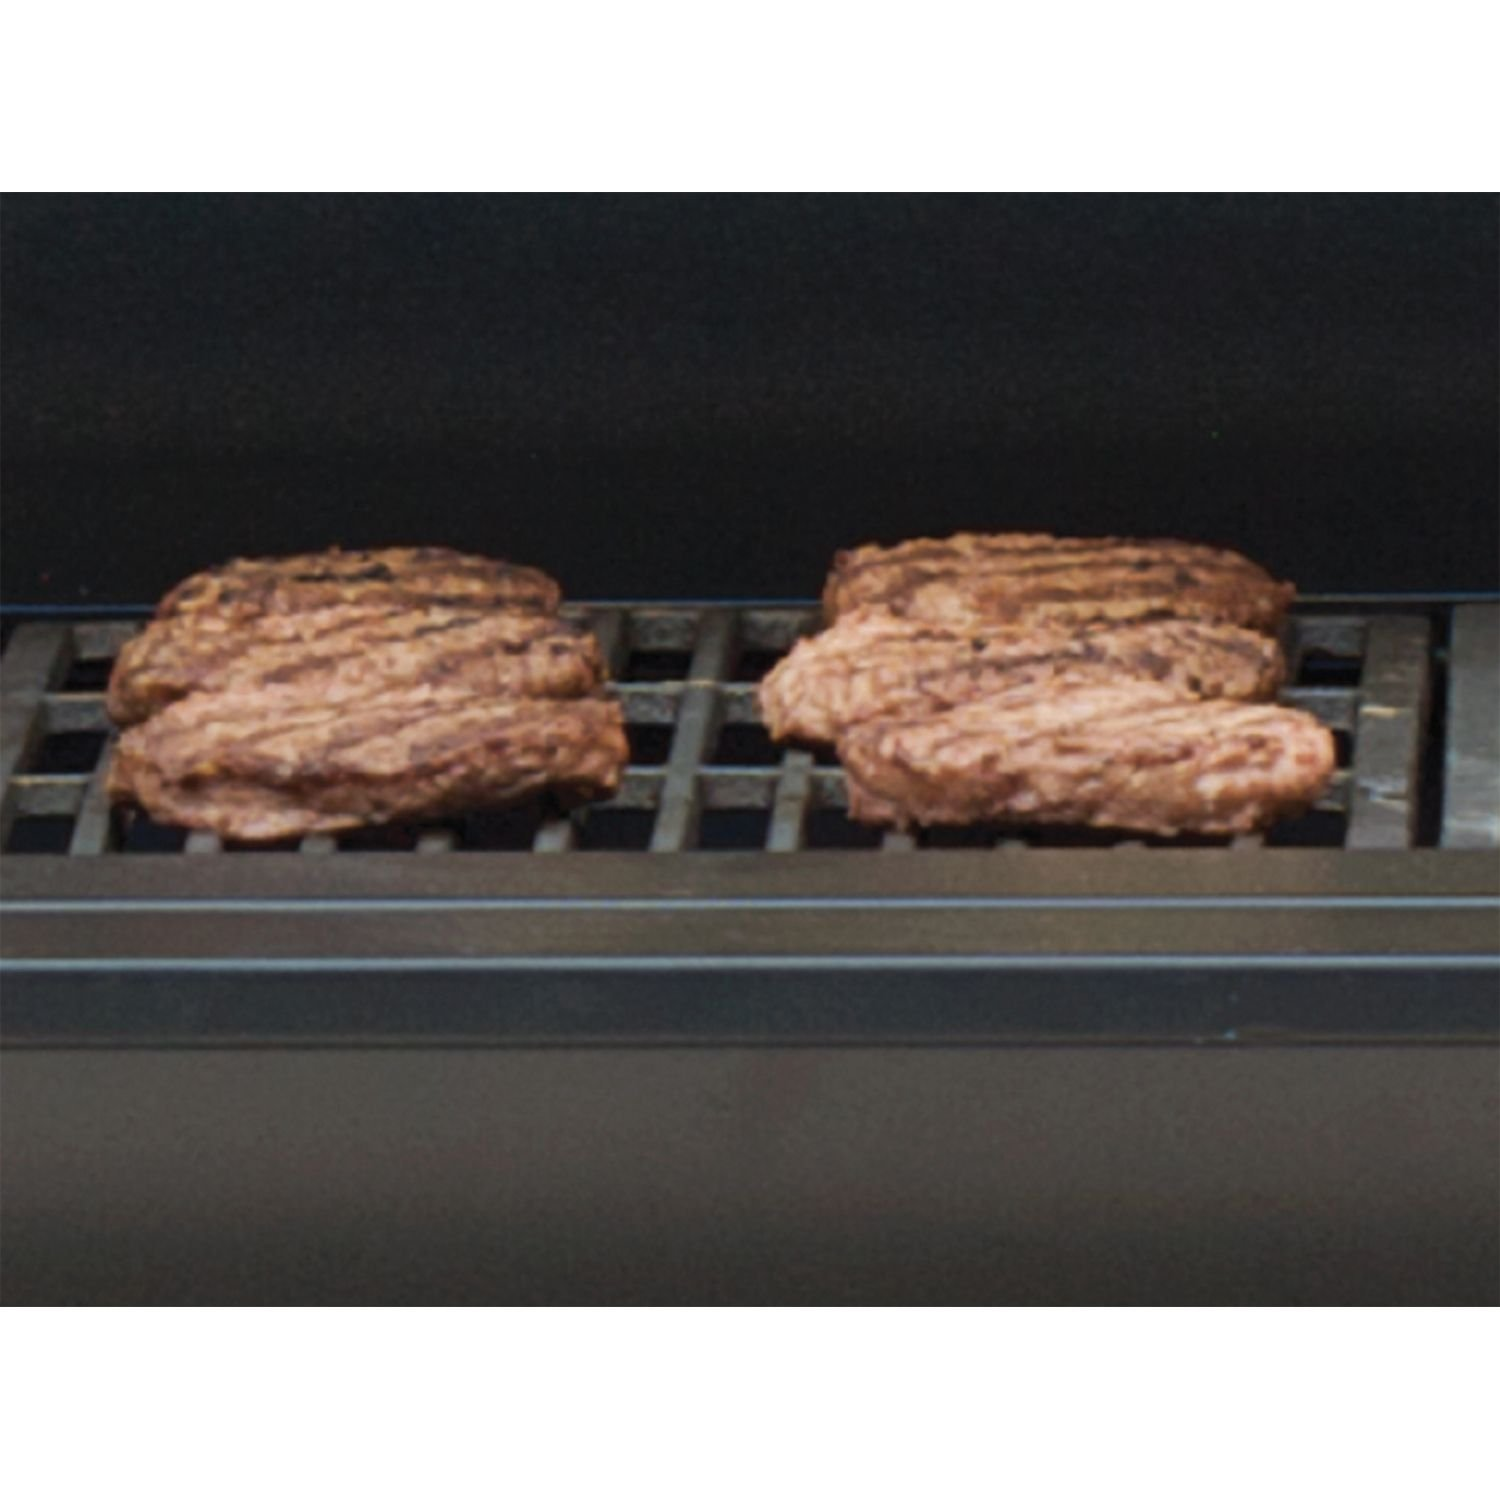 Gas & Charcoal Hybrid Grill BBQ Cooking Cast Iron Stainless Steel Party Heavy Duty by MM (Image #2)